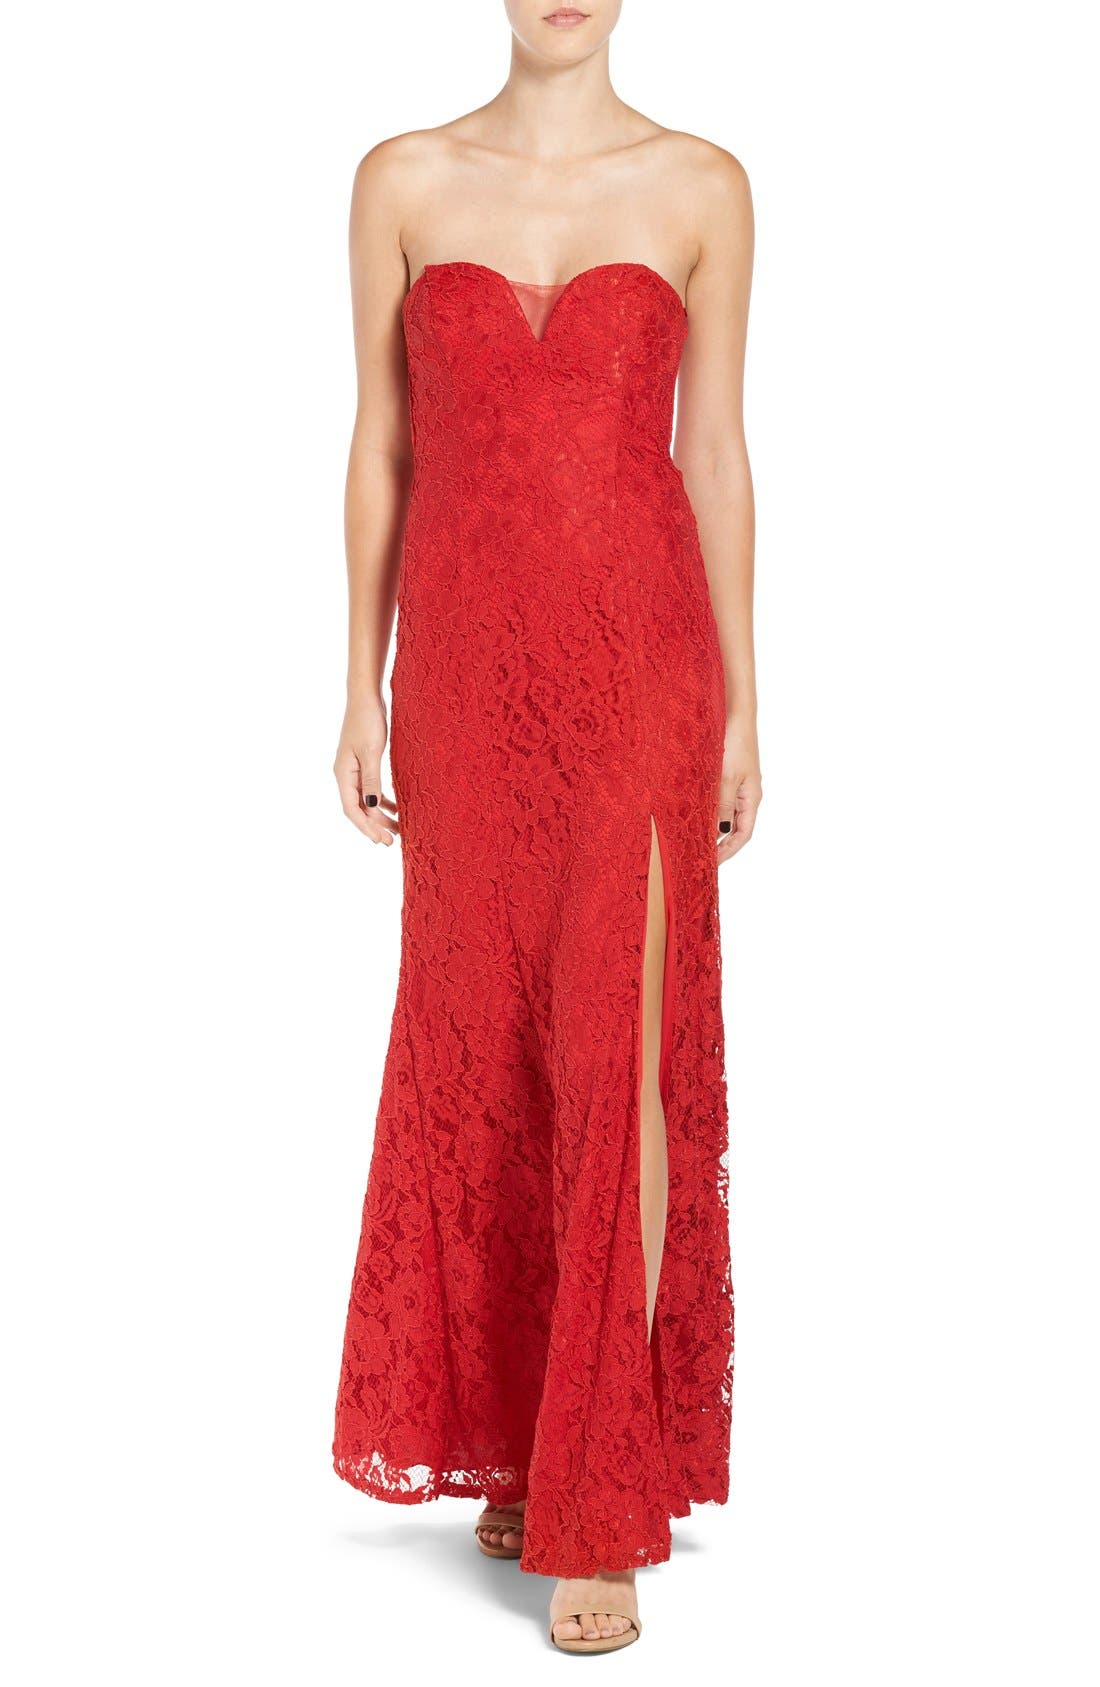 Alternate Image 1 Selected - Sequin Hearts Strapless Lace Gown